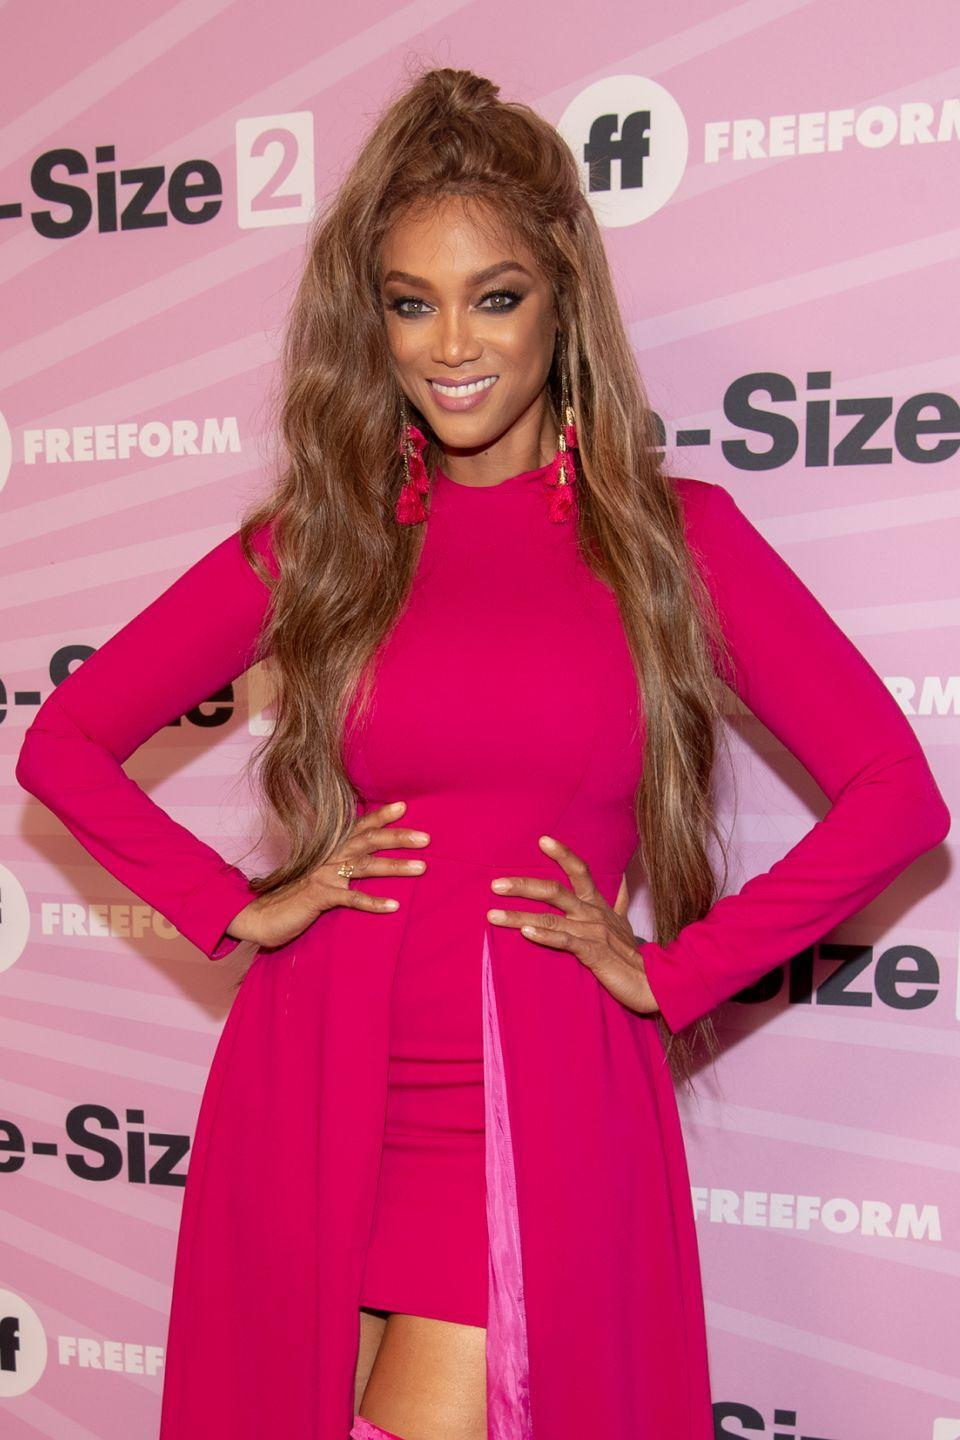 """<p>In her memoir, <em>Perfect Is Boring</em>, Tyra shared that she got a nose job early in her career. Although she did have bones in her nose that were """"growing and itching,"""" the <em>America's Next Top Model </em>host admitted that she could breathe fine and just wanted to add cosmetic surgery. <br></p><p>""""Natural beauty is unfair,"""" she told <em><a href=""""https://people.com/tv/tyra-banks-nose-job/"""" rel=""""nofollow noopener"""" target=""""_blank"""" data-ylk=""""slk:PEOPLE"""" class=""""link rapid-noclick-resp"""">PEOPLE</a></em>. """"I get really uncomfortable when women who are these natural beauties judge anybody who does anything to themselves.""""</p>"""